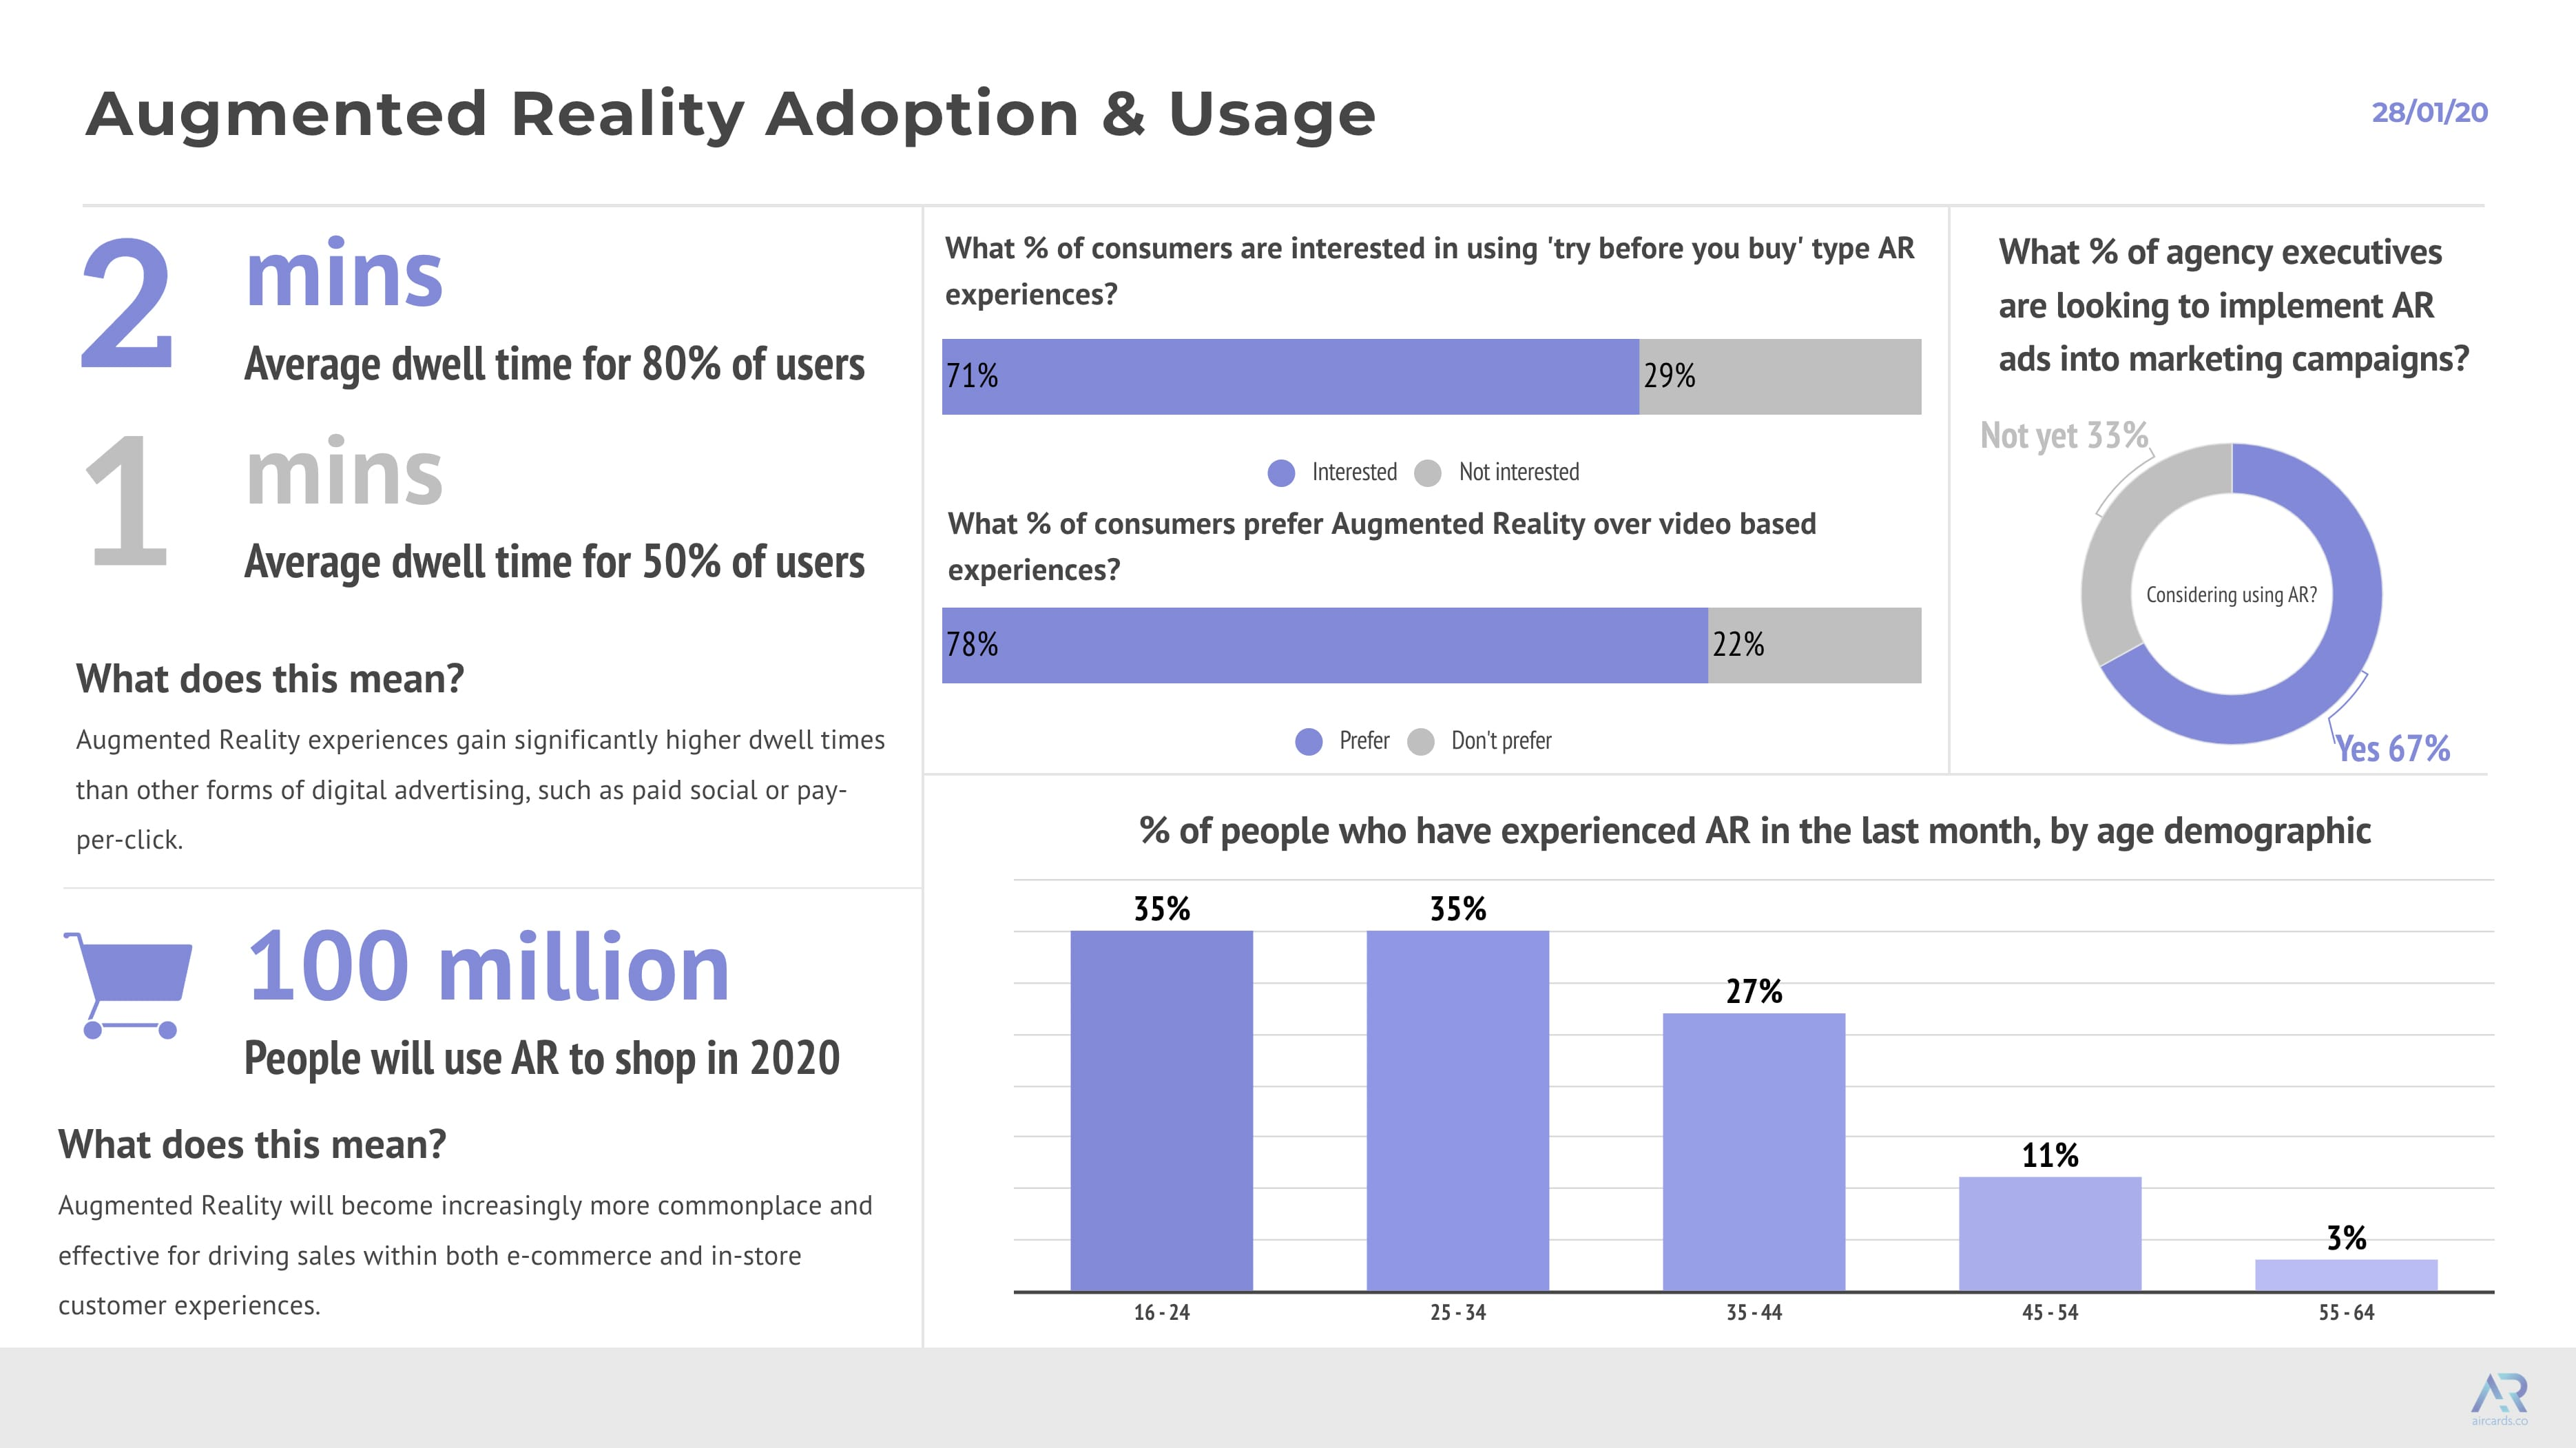 Enterprise Adoption of Augmented Reality in 2020